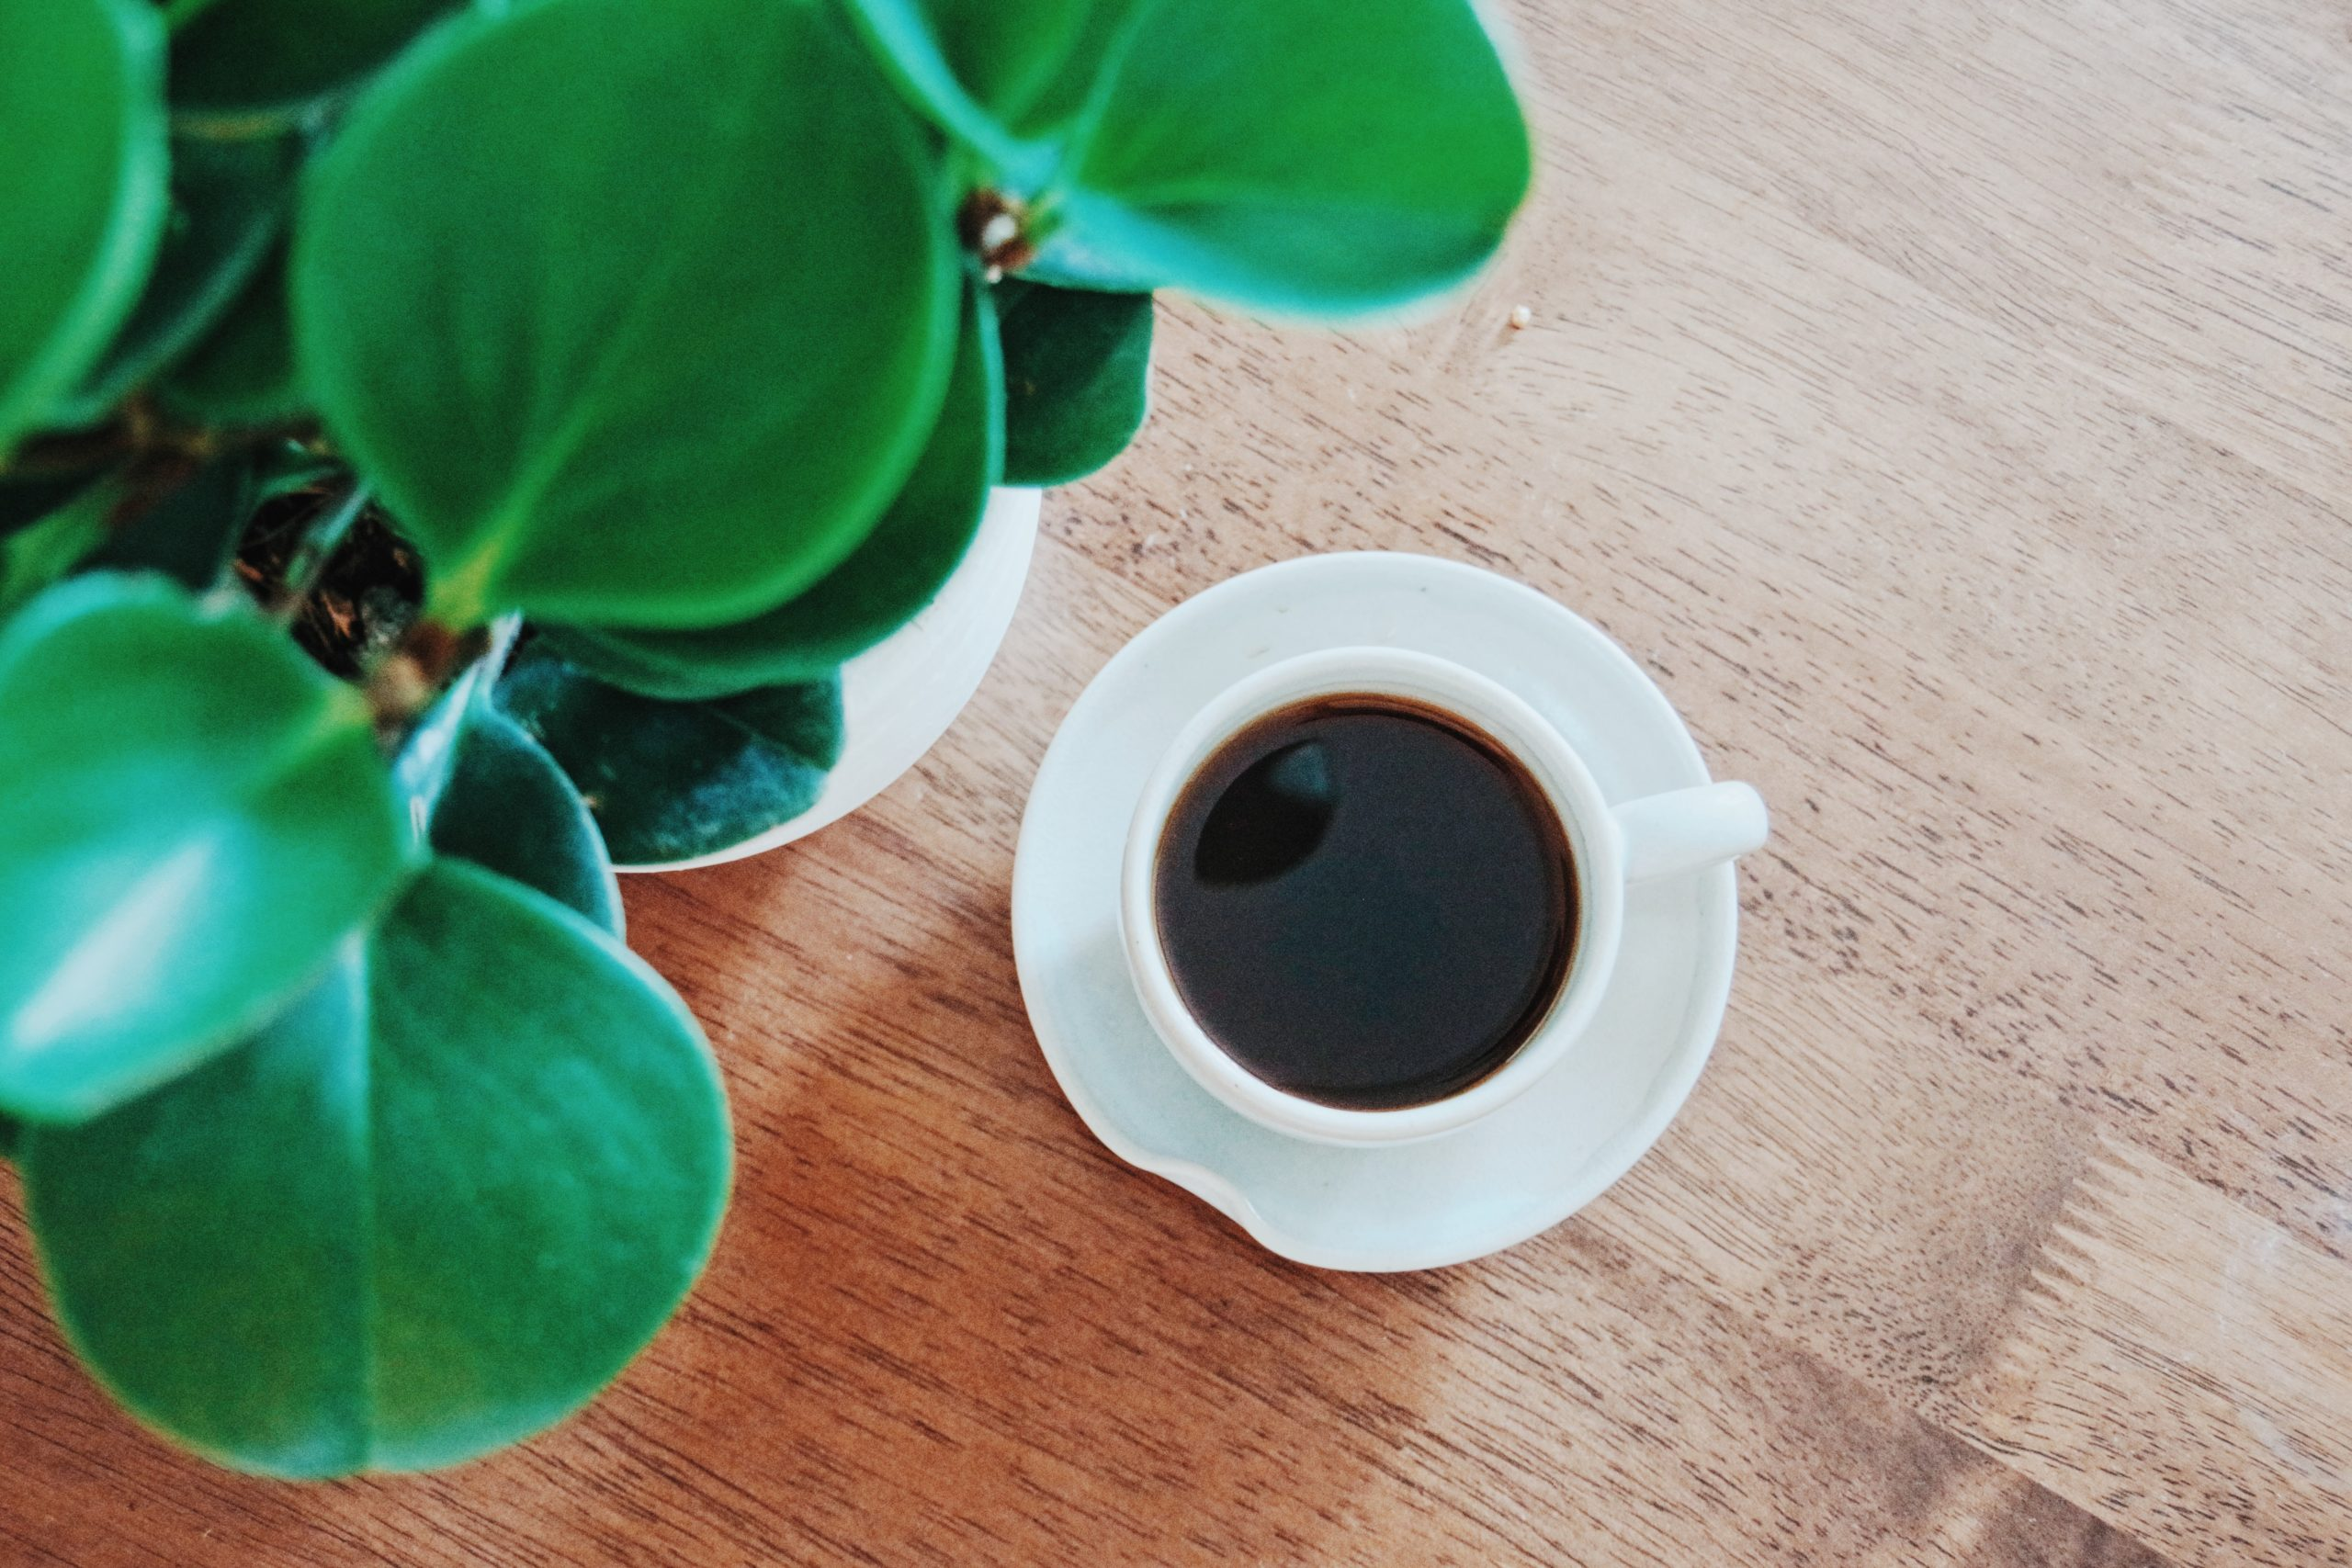 a cup of black coffee placed on a wooden table